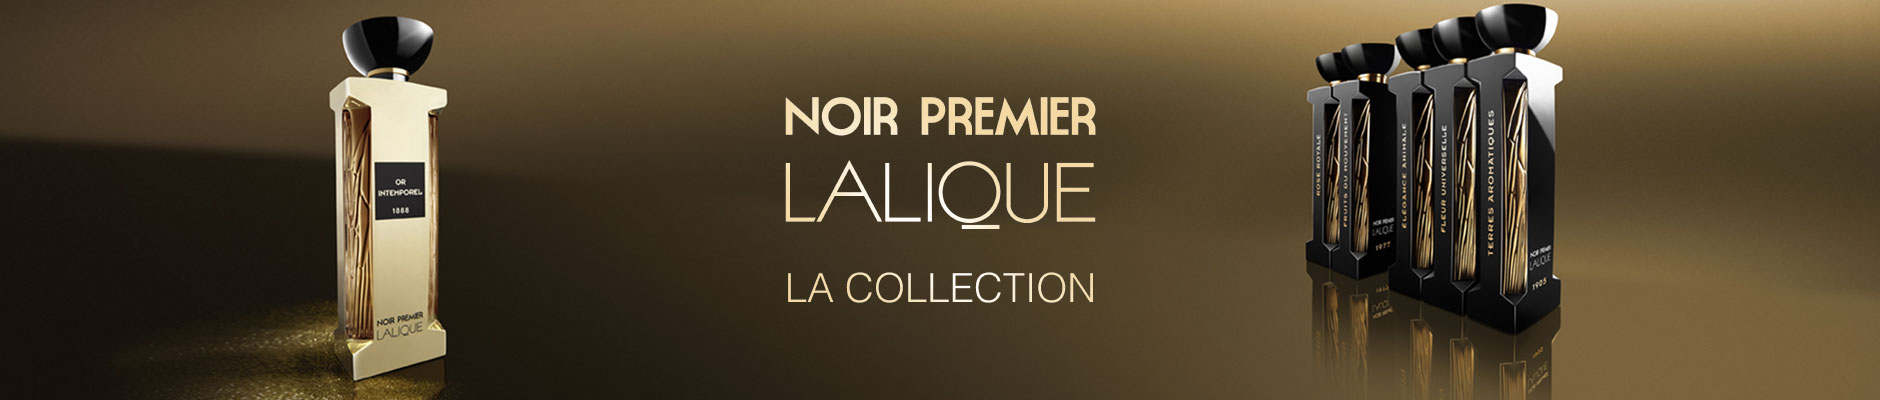 Noir Premier Lalique, LA Collection